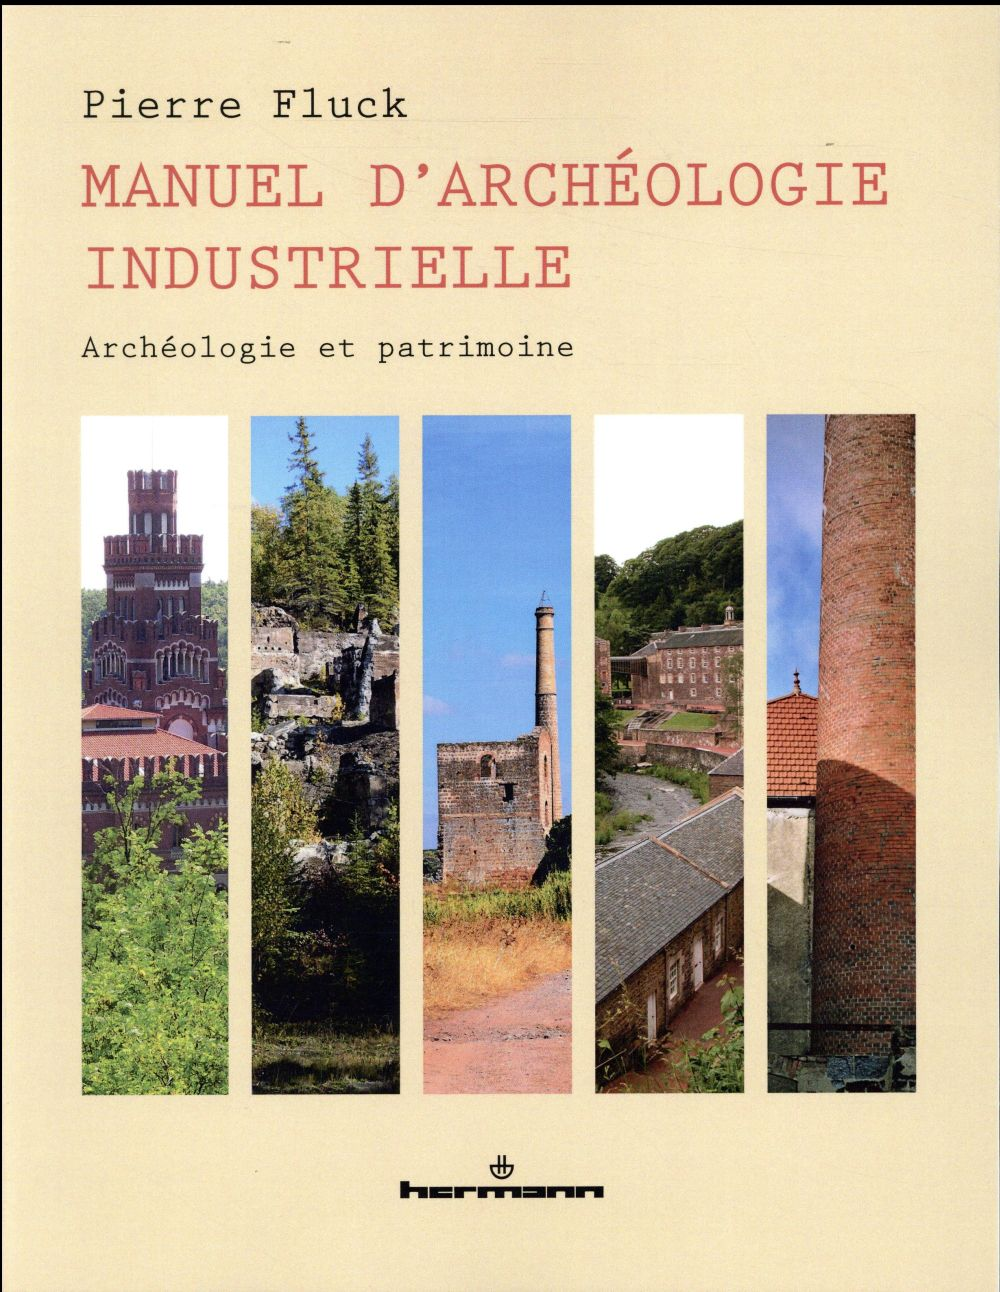 MANUEL D-ARCHEOLOGIE INDUSTRIE FLUCK PIERRE HERMANN